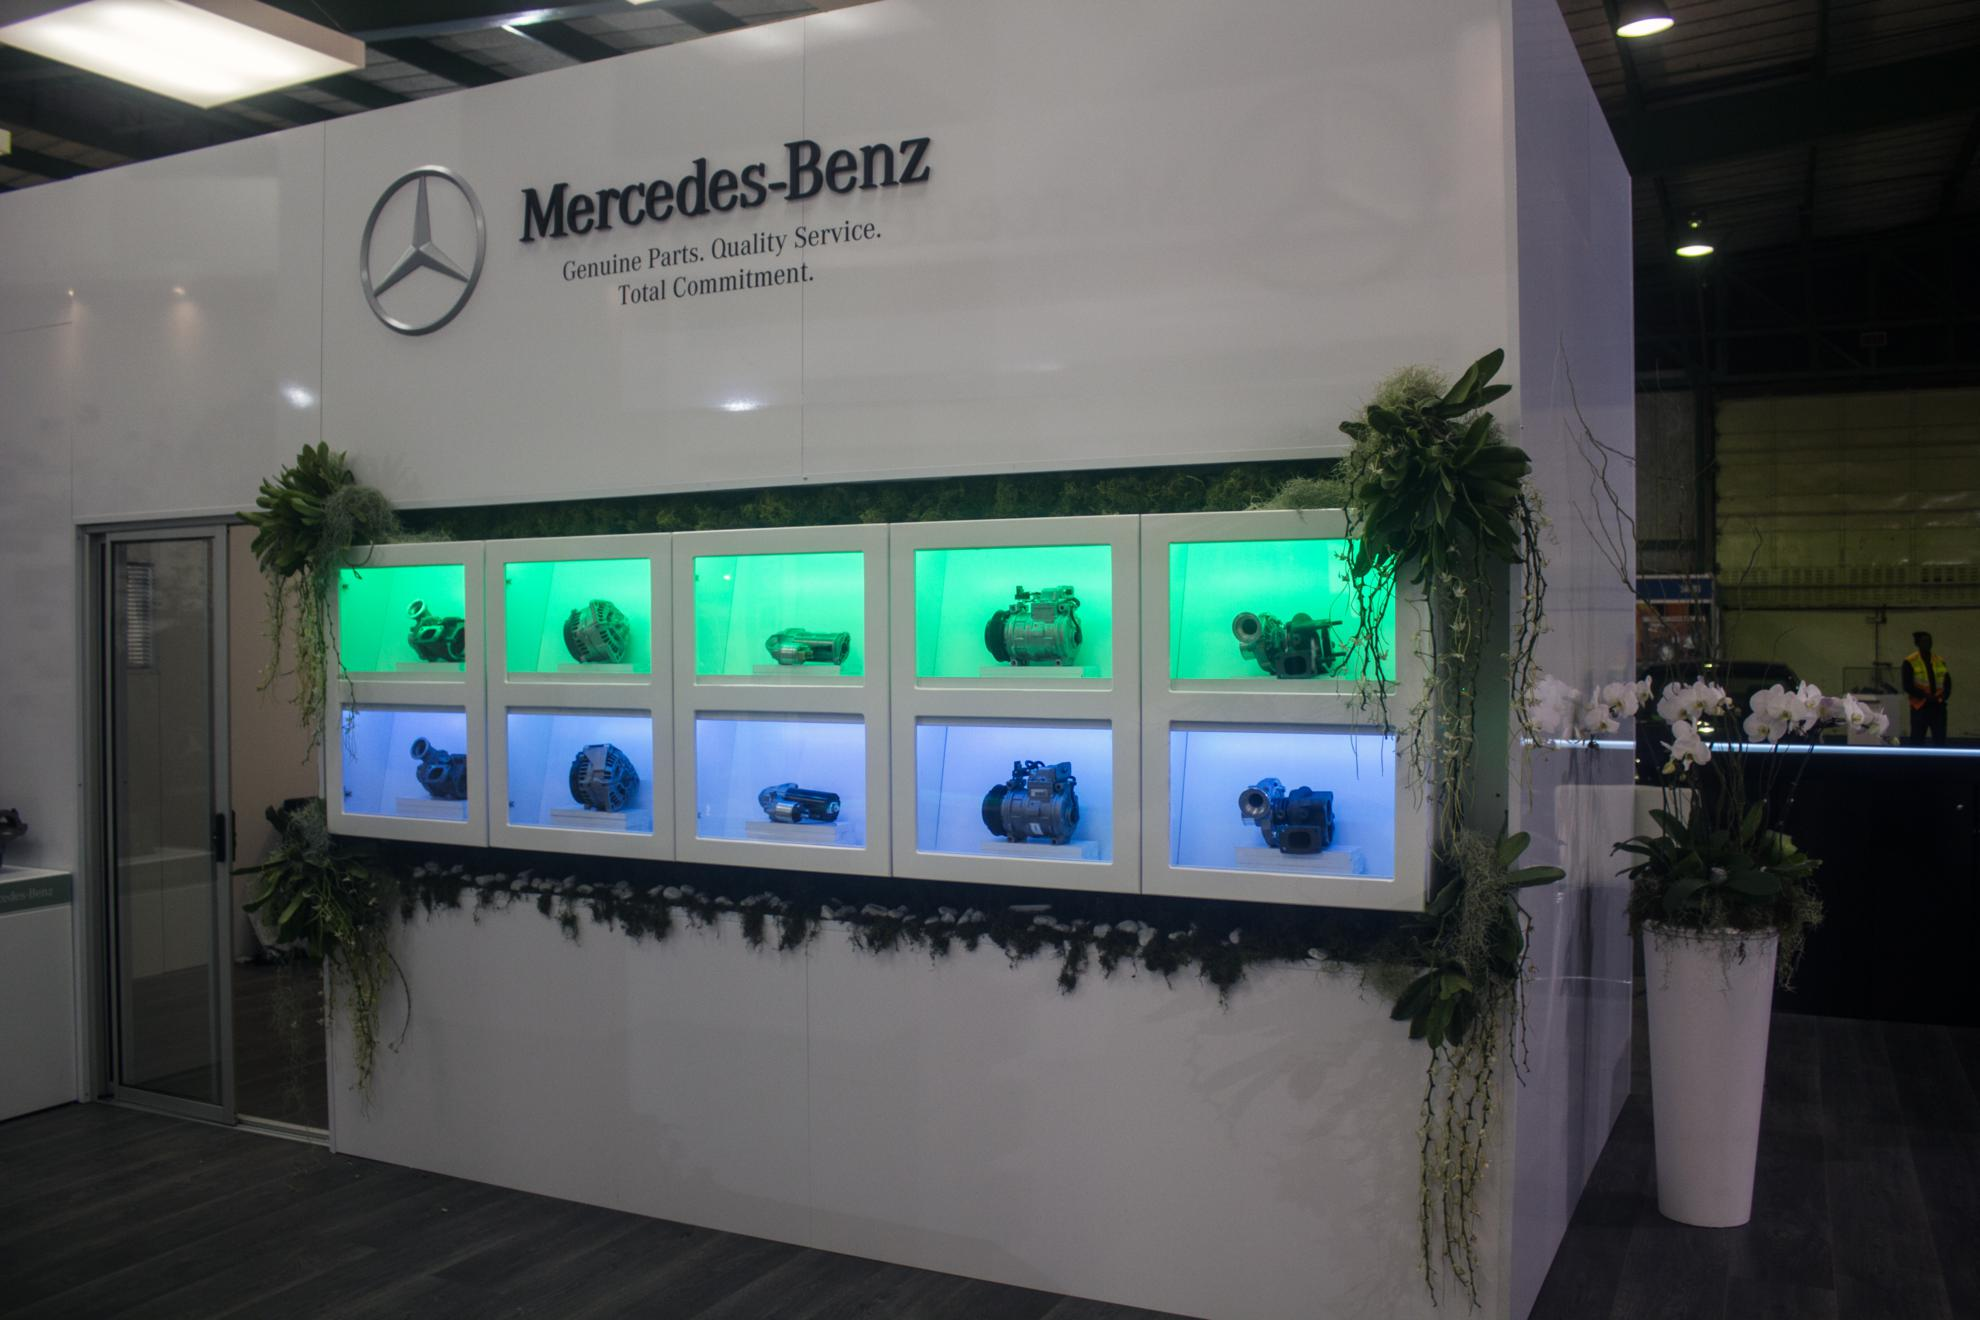 Mercedes-Benz-Automechanika-2013-05